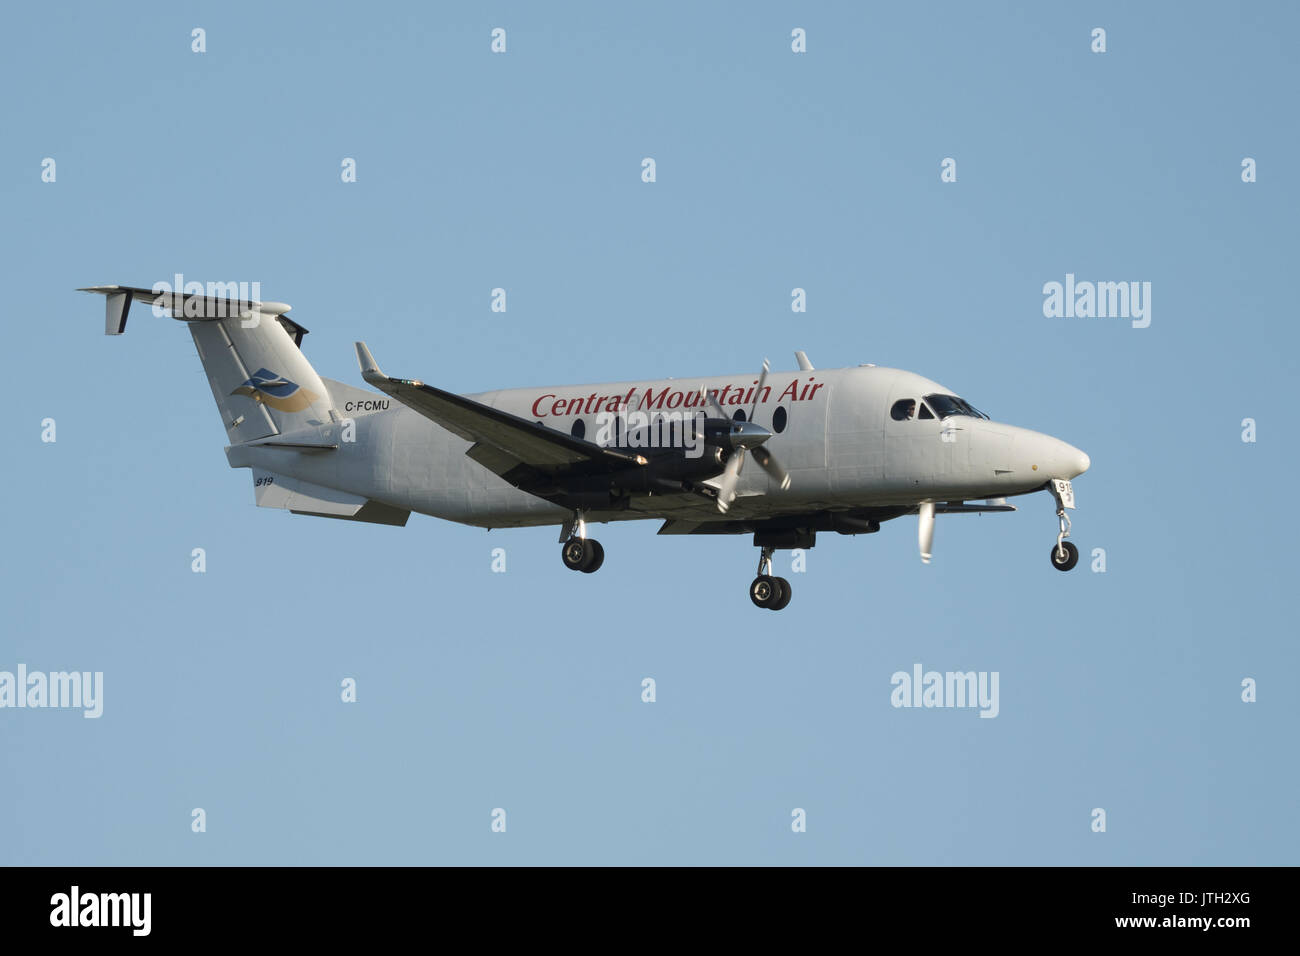 Richmond, British Columbia, Canada. 10th June, 2017. A Central Mountain Air Beech 1900D (C-FCMU) airplane on final approach for landing at Vancouver International Airport. Credit: Bayne Stanley/ZUMA Wire/Alamy Live News - Stock Image